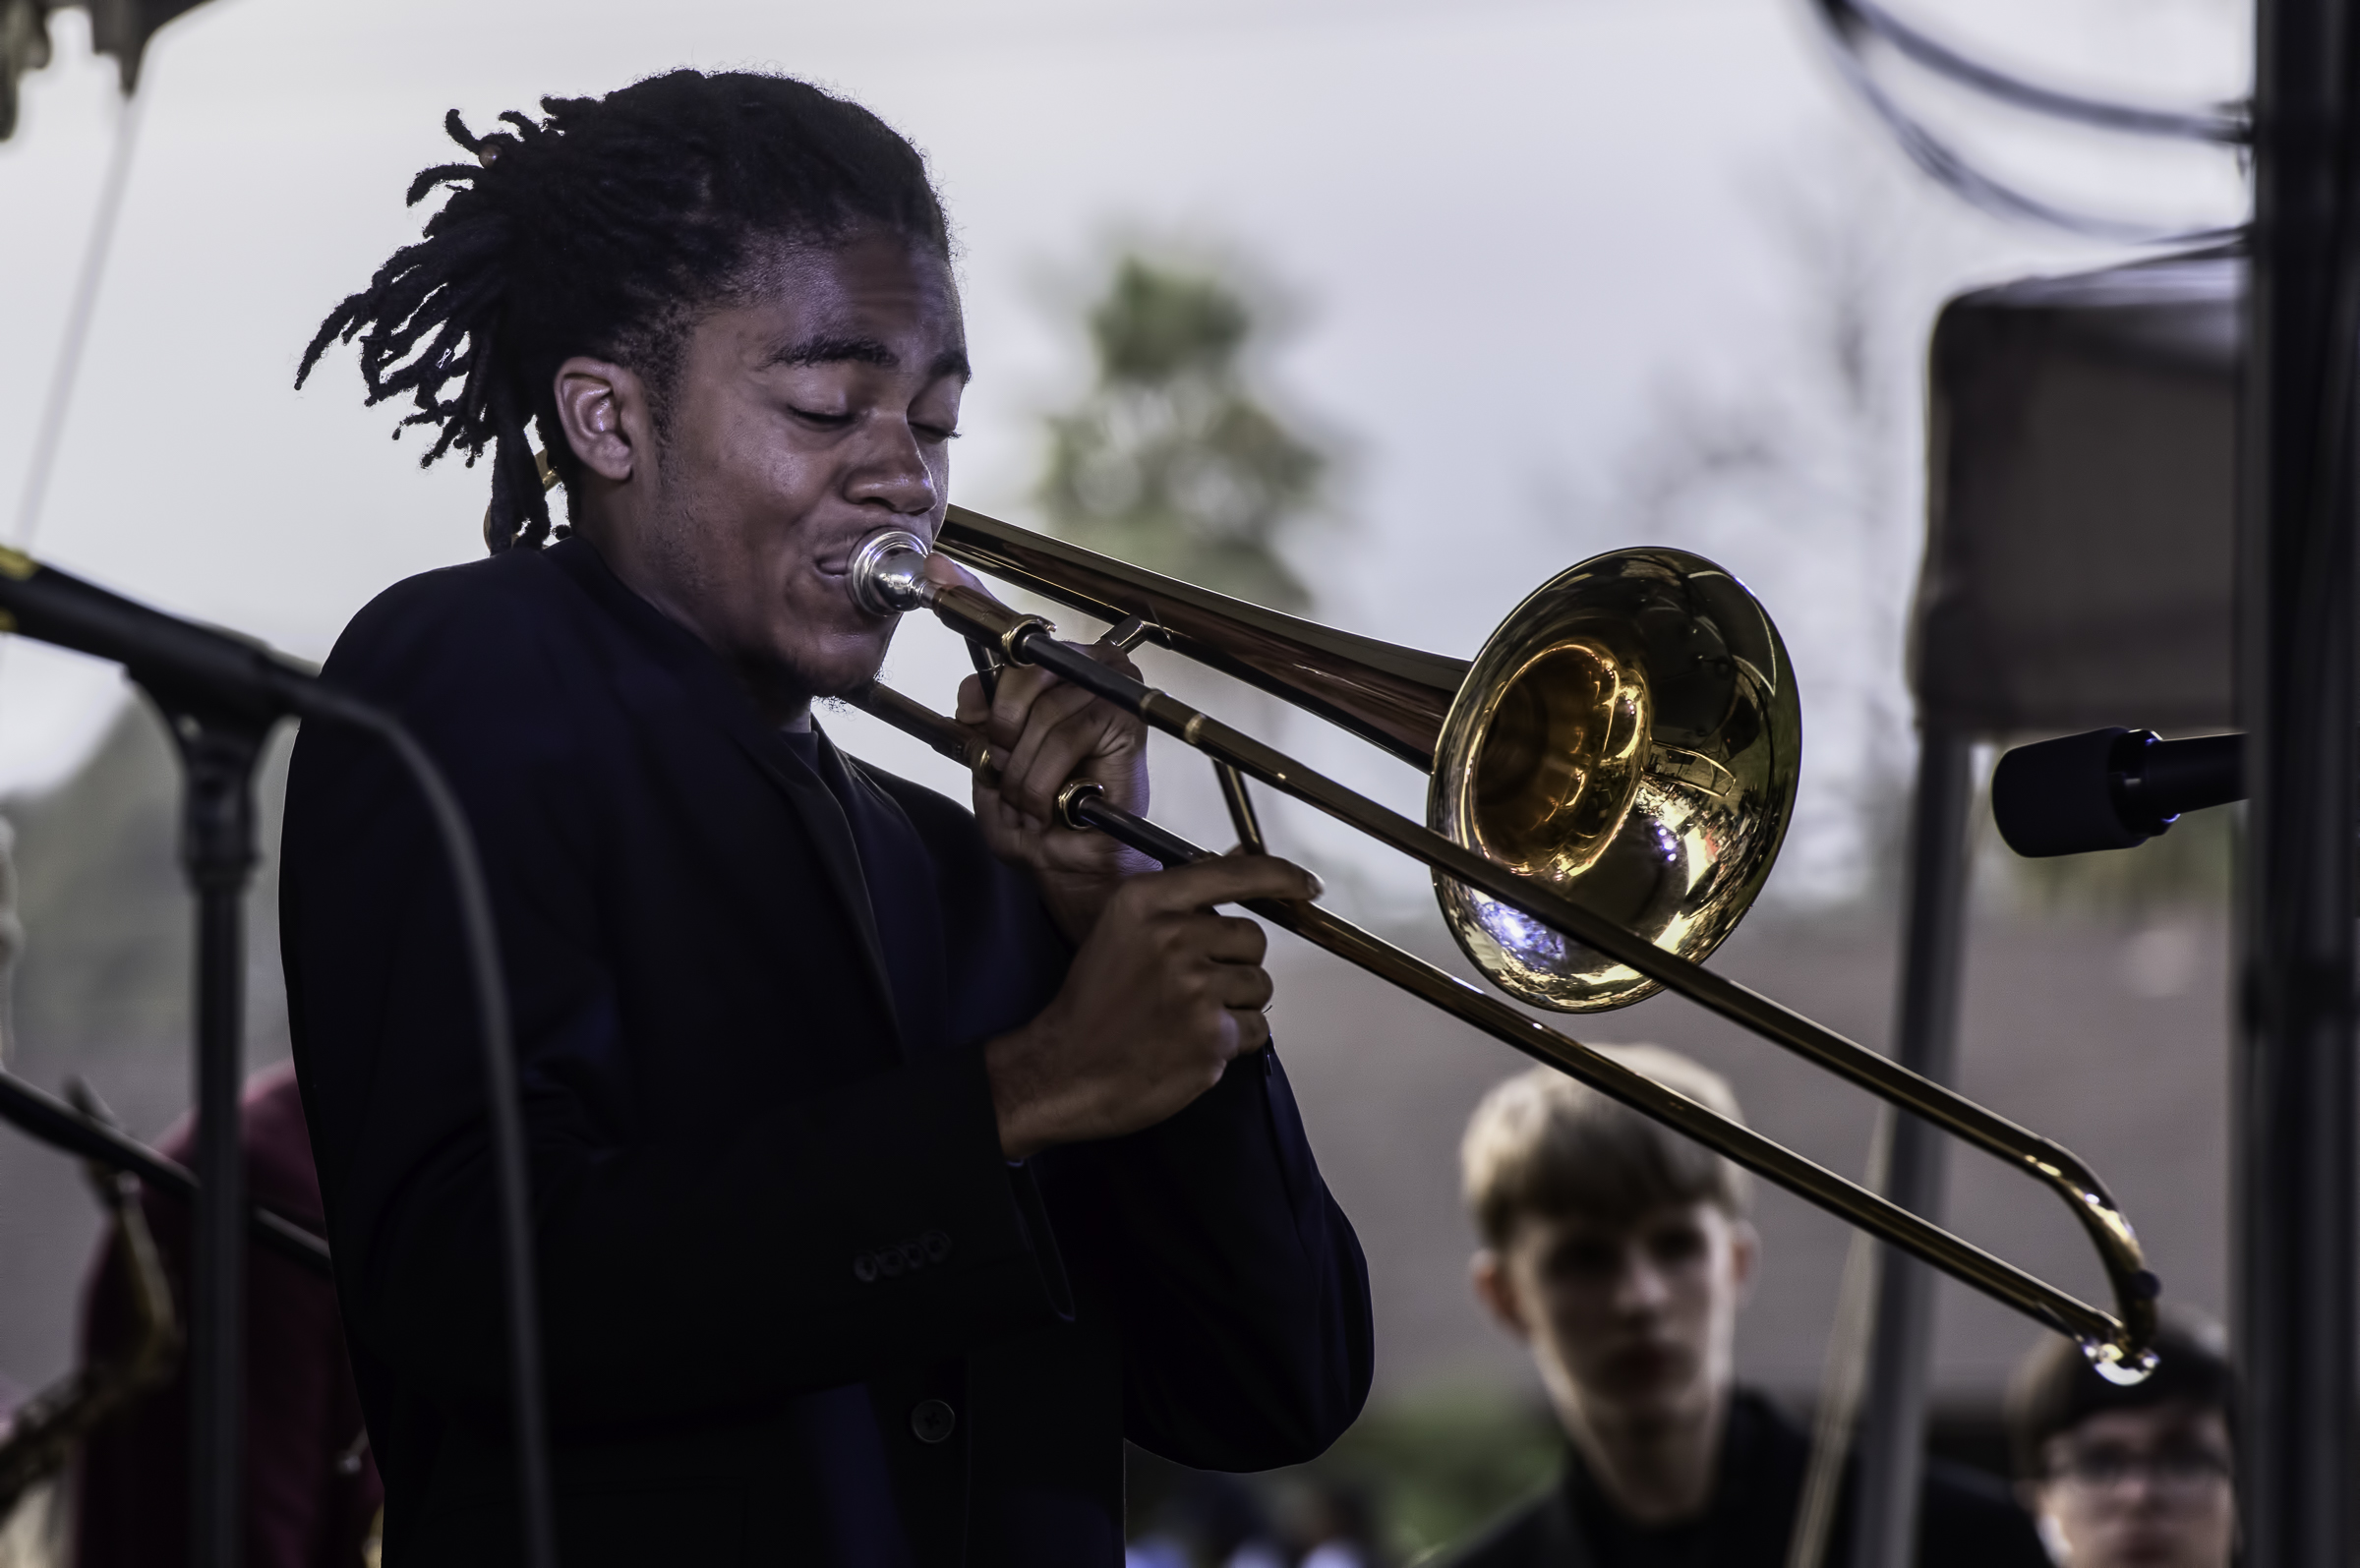 Rashaan Salaam with the Next Generation Jazz Orchestra at the Monterey Jazz Festival